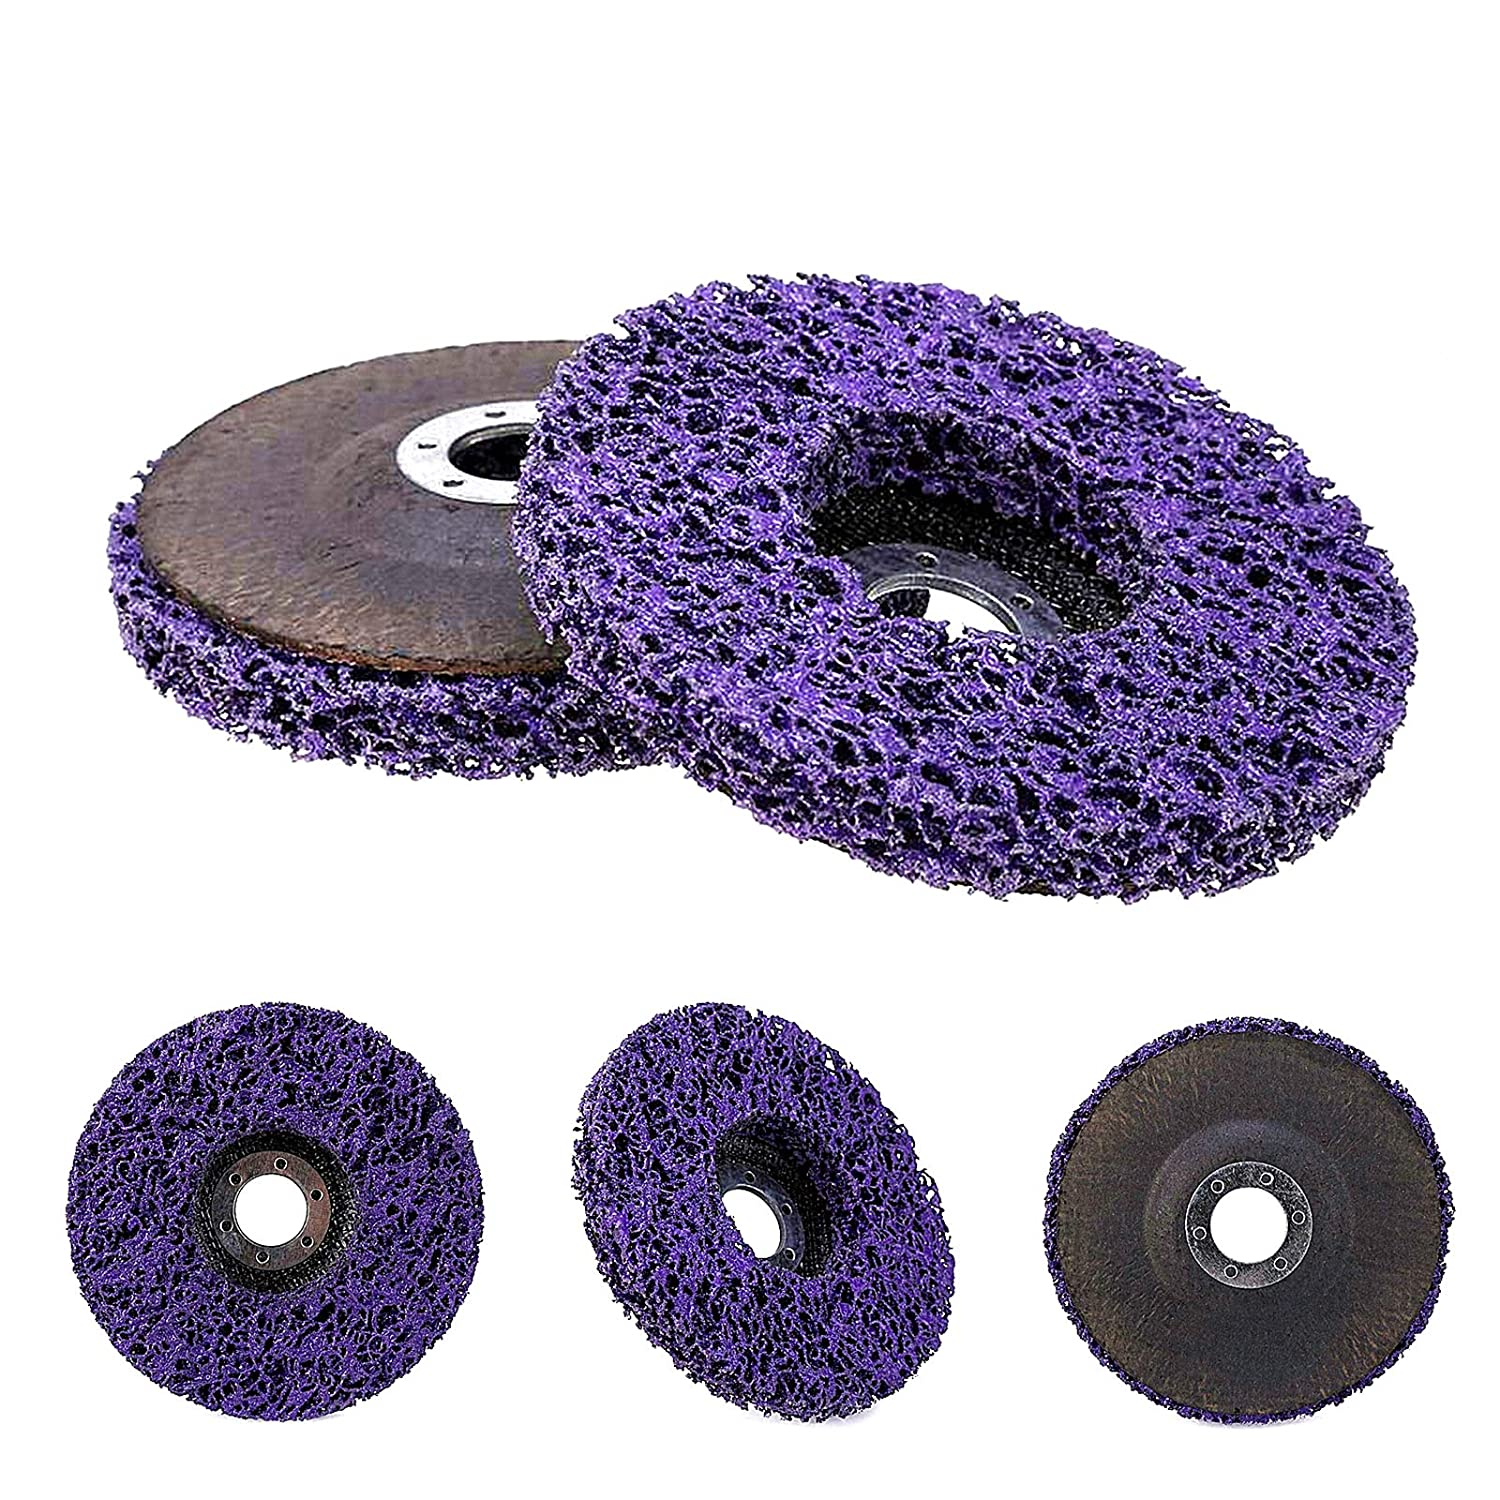 125 MM Poly-Carbide Abrasive Discs HLYCare Stripping Wheel Strip Discs for Angle Grinders Clean and Remove Paint//Coating//Rust//Oxidation,3 PCS 5/″-7//8/″